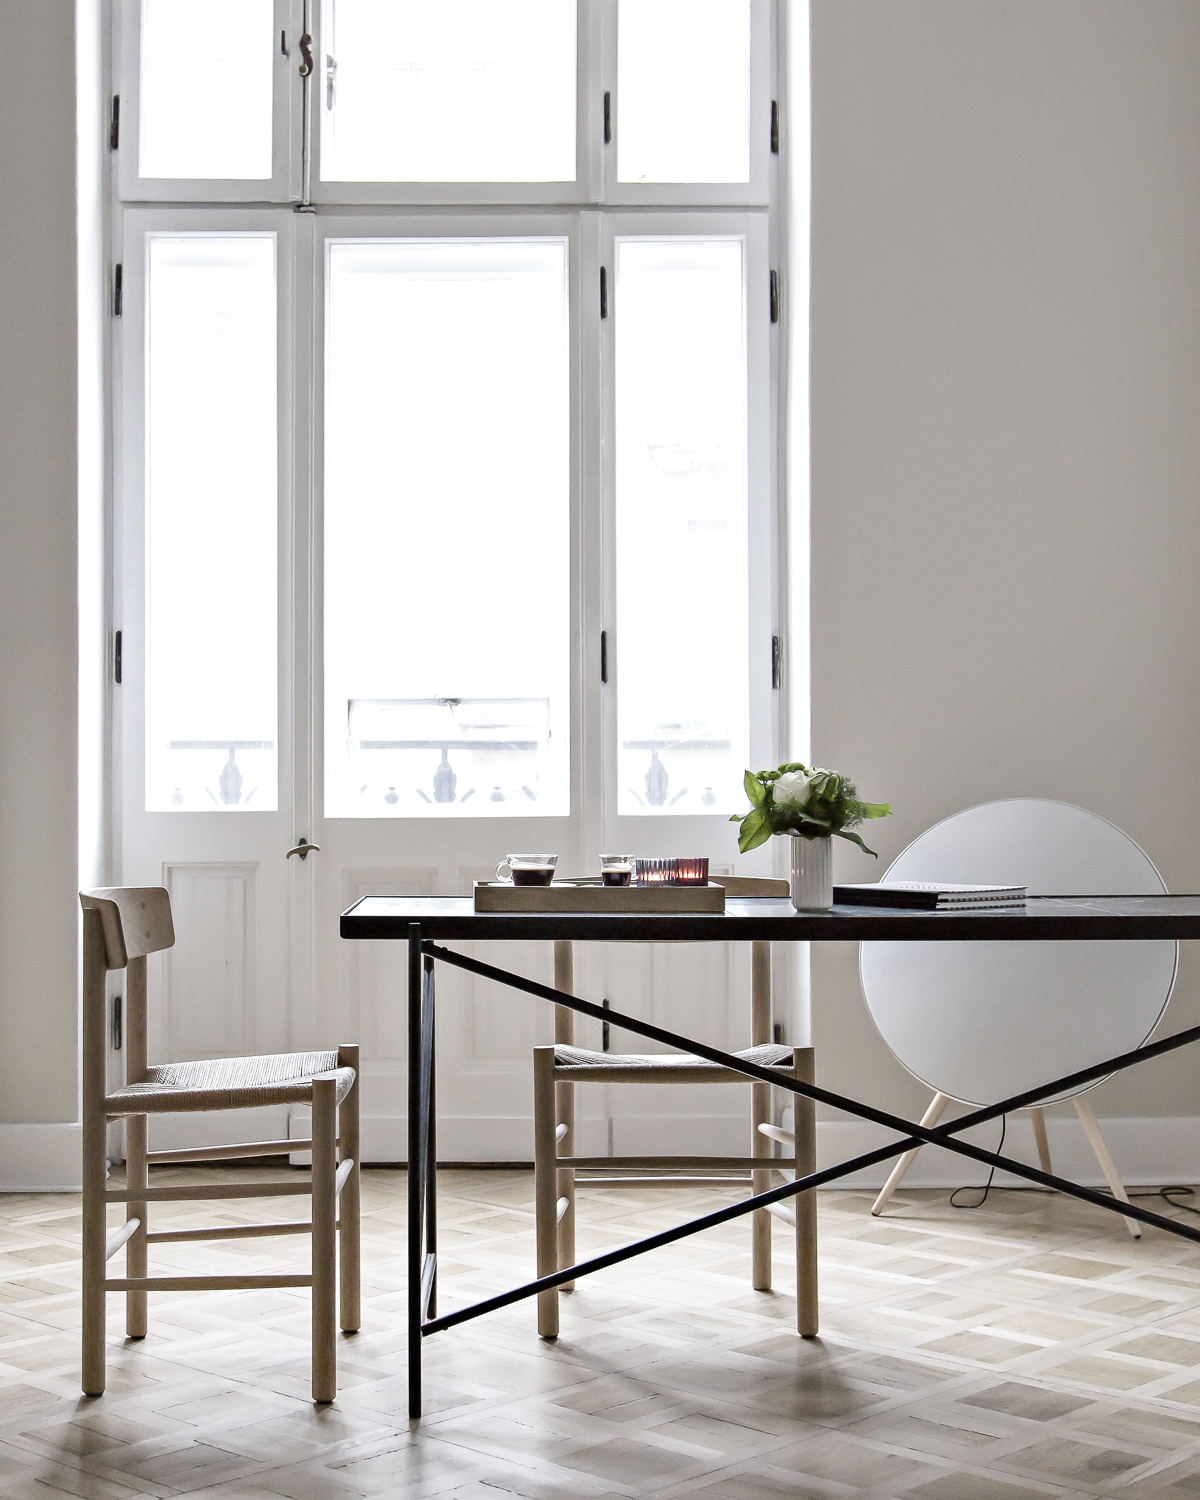 Hygge at the office and beautiful Fredericia chairs